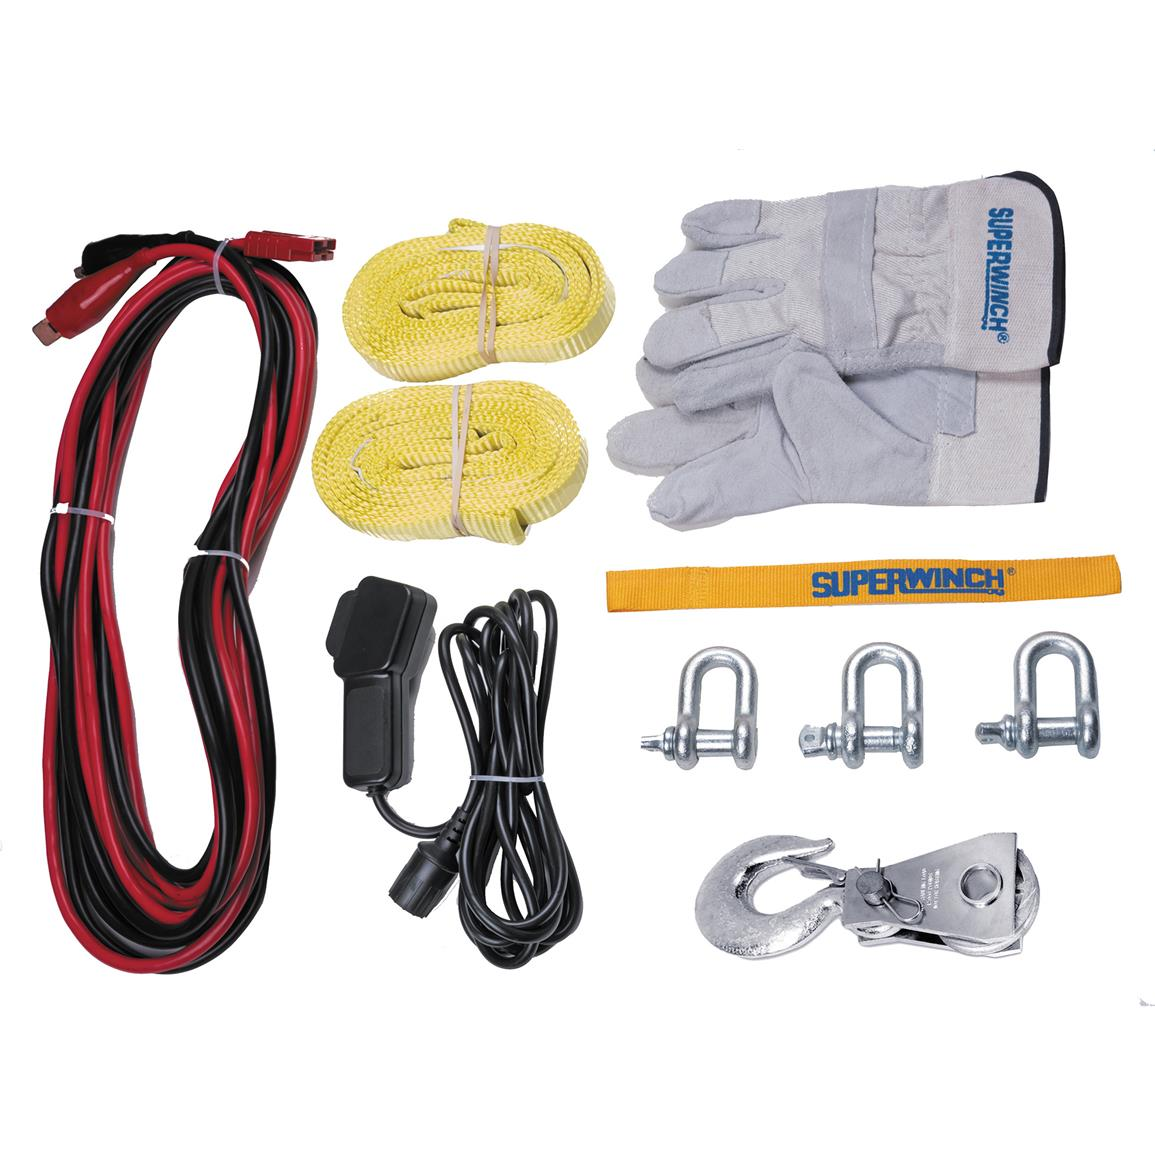 Kit includes tthree 20,000-lb. D-shackles, two 8 foot heavy-duty straps rated for 8,000 lbs., a 16,000-lb. pulley block, a 12 foot hand held remote, a 20 foot quick-connect power cord, and a pair of heavy-duty leather palmed winch gloves